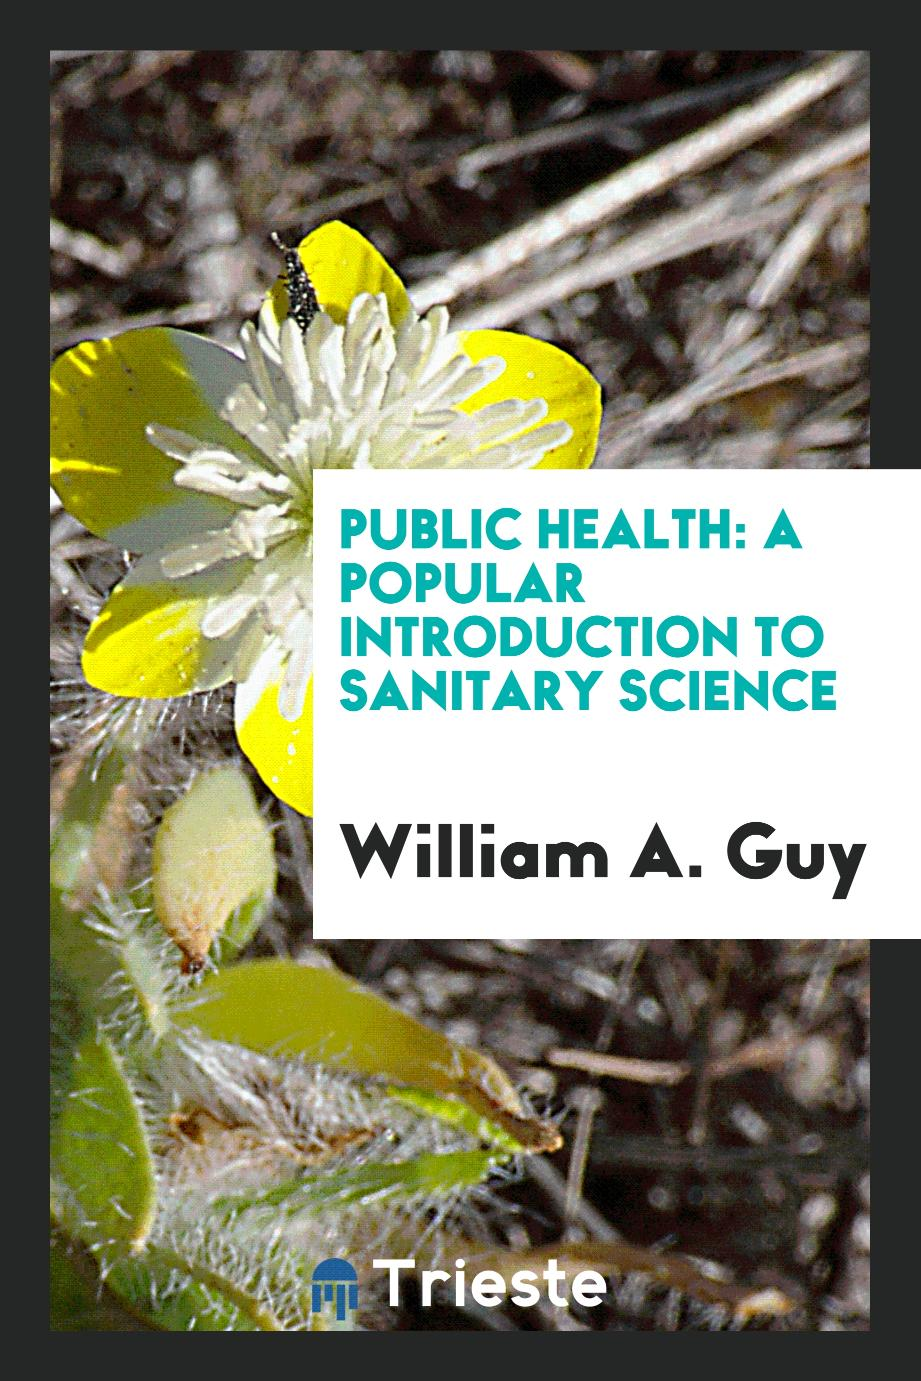 Public health: a popular introduction to sanitary science